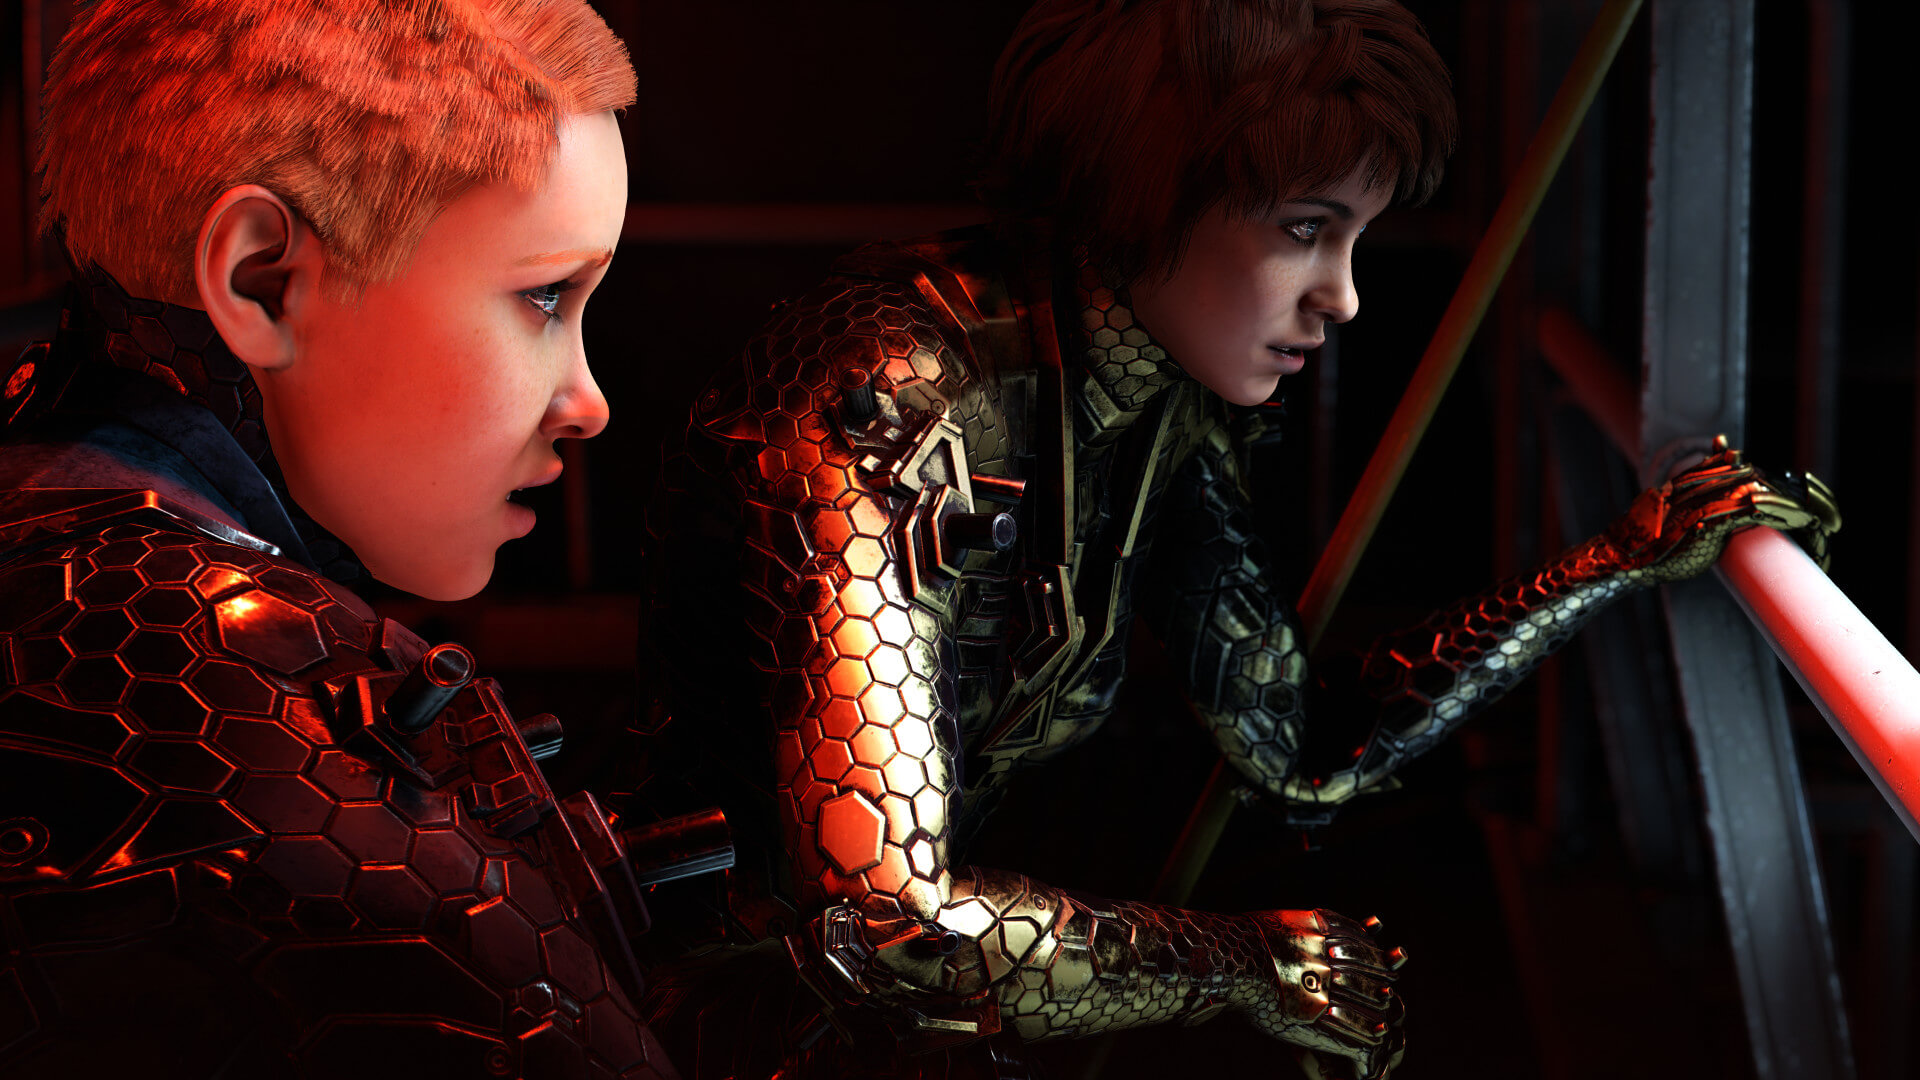 Wolfenstein: Youngblood update 1.04 releases this week, full patch release notes revealed